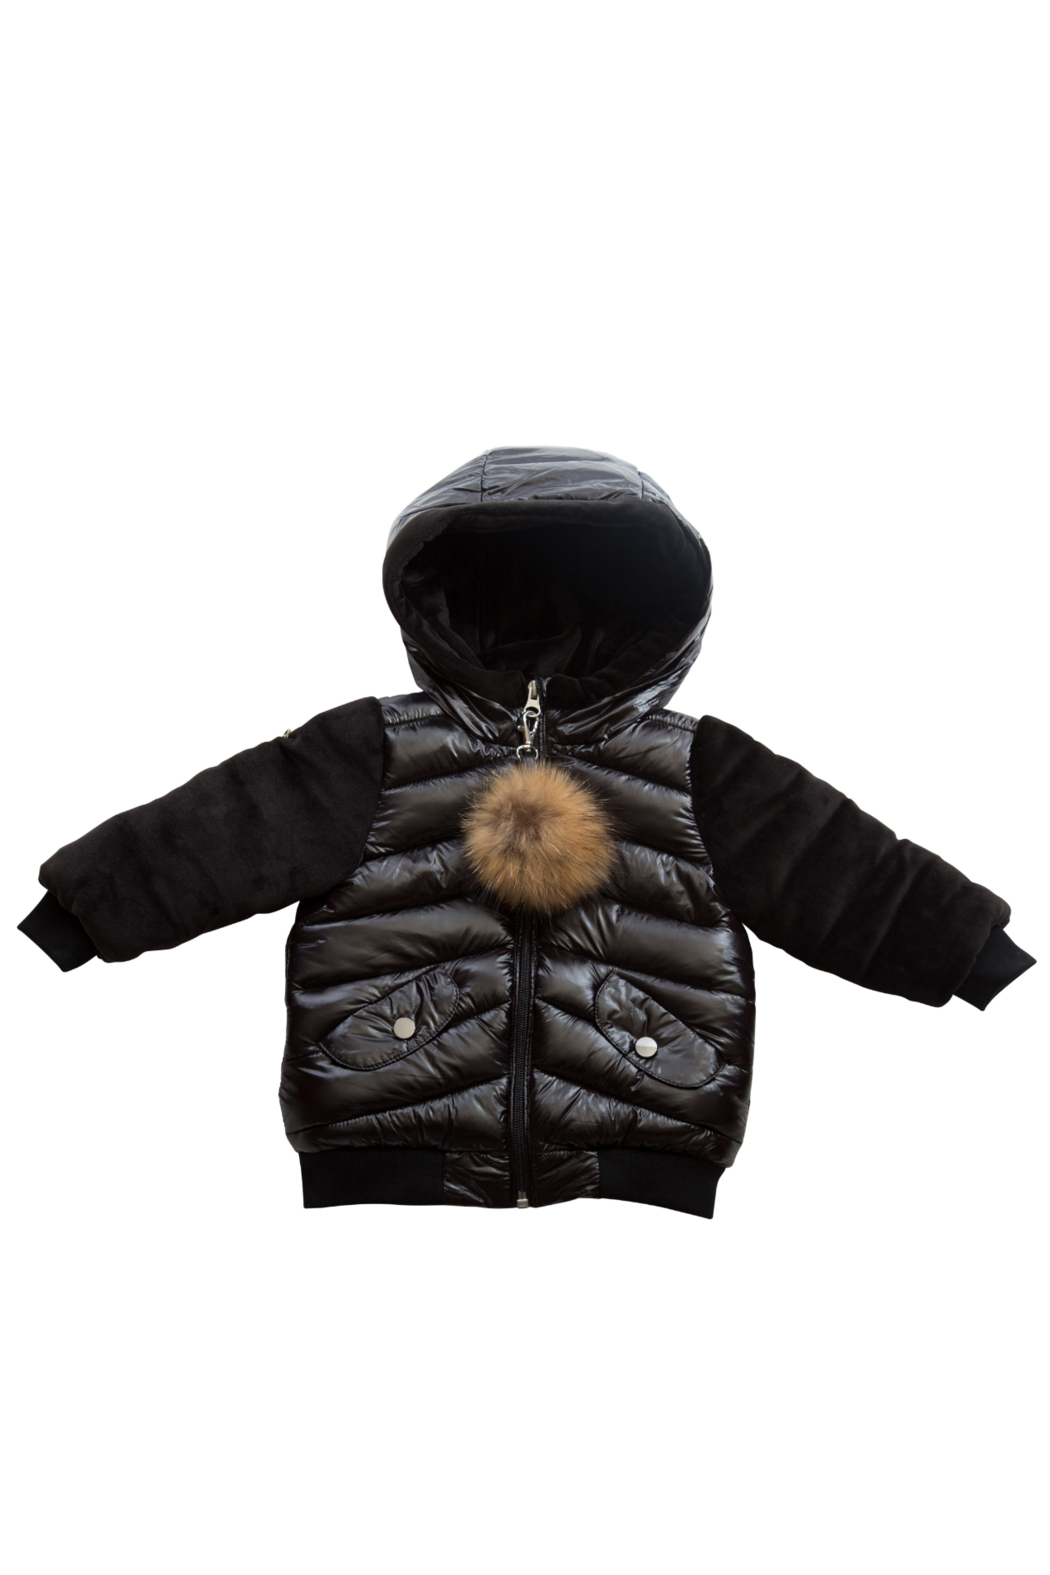 COZY COOP Infants' and Toddlers Quilted Winter Jacket - Main Image